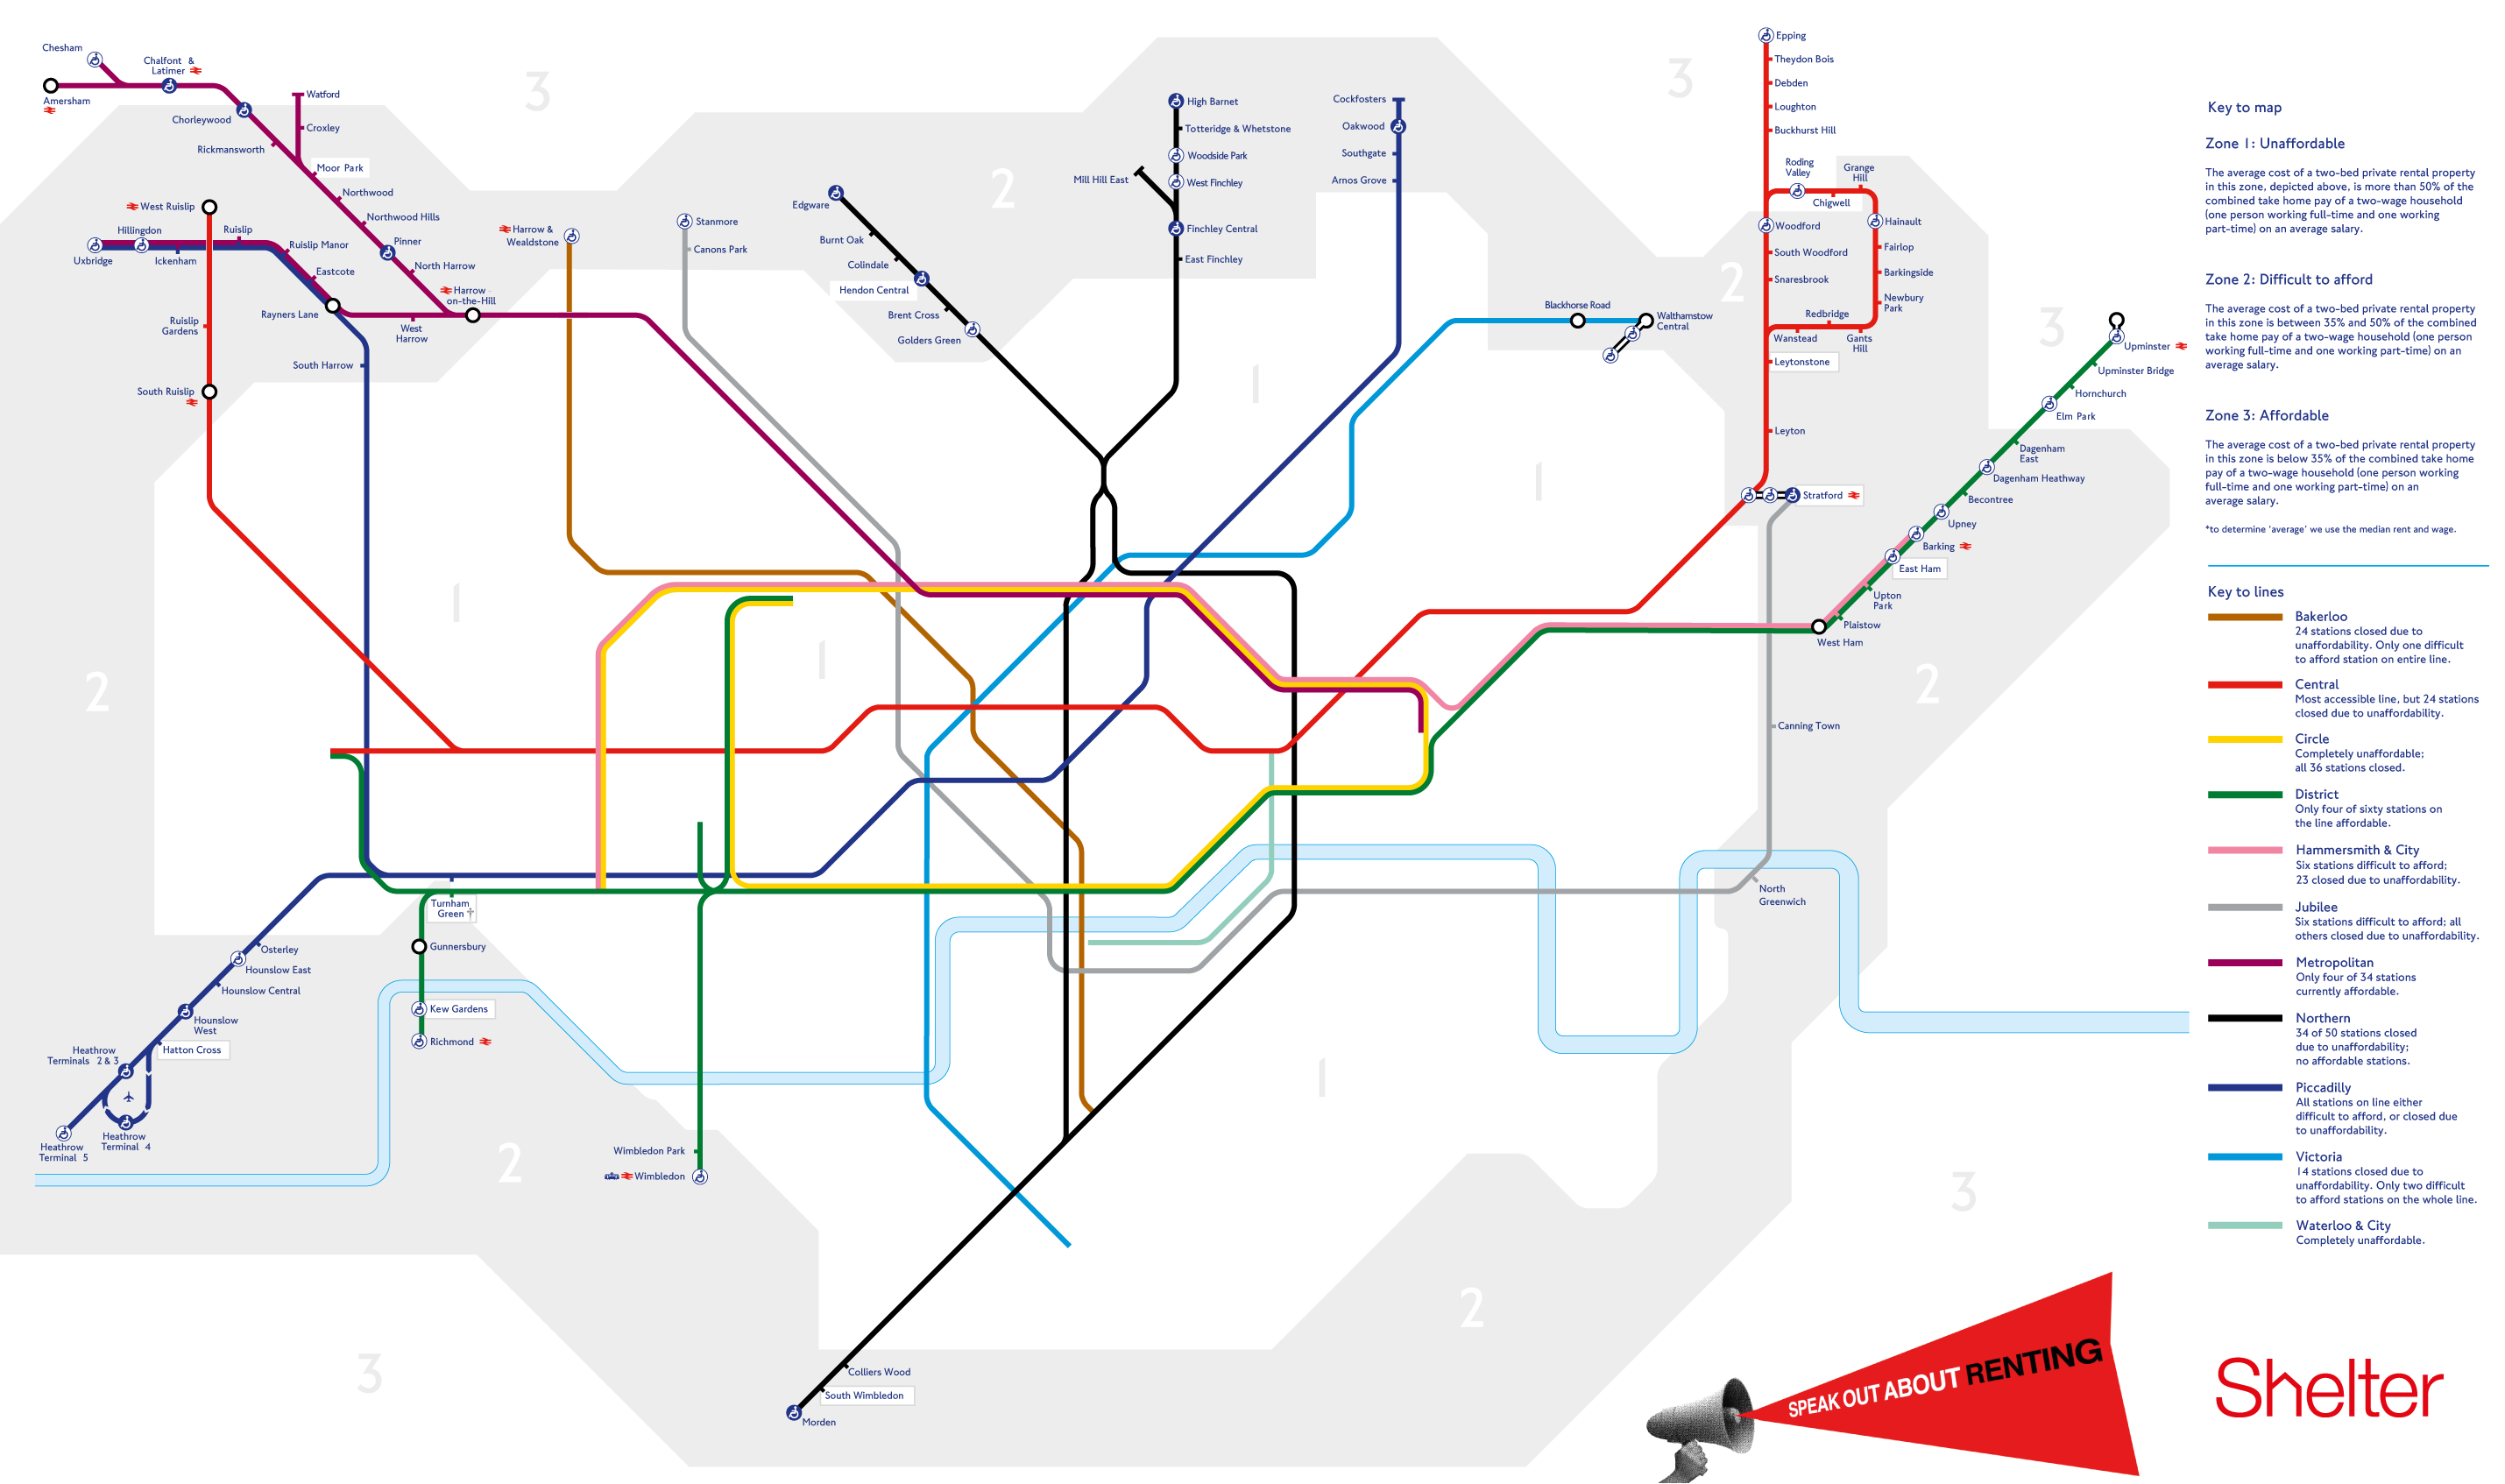 this tube map of affordability has removed the tube stops now deemed to be unaffordable to the average renter based on median rent and salary